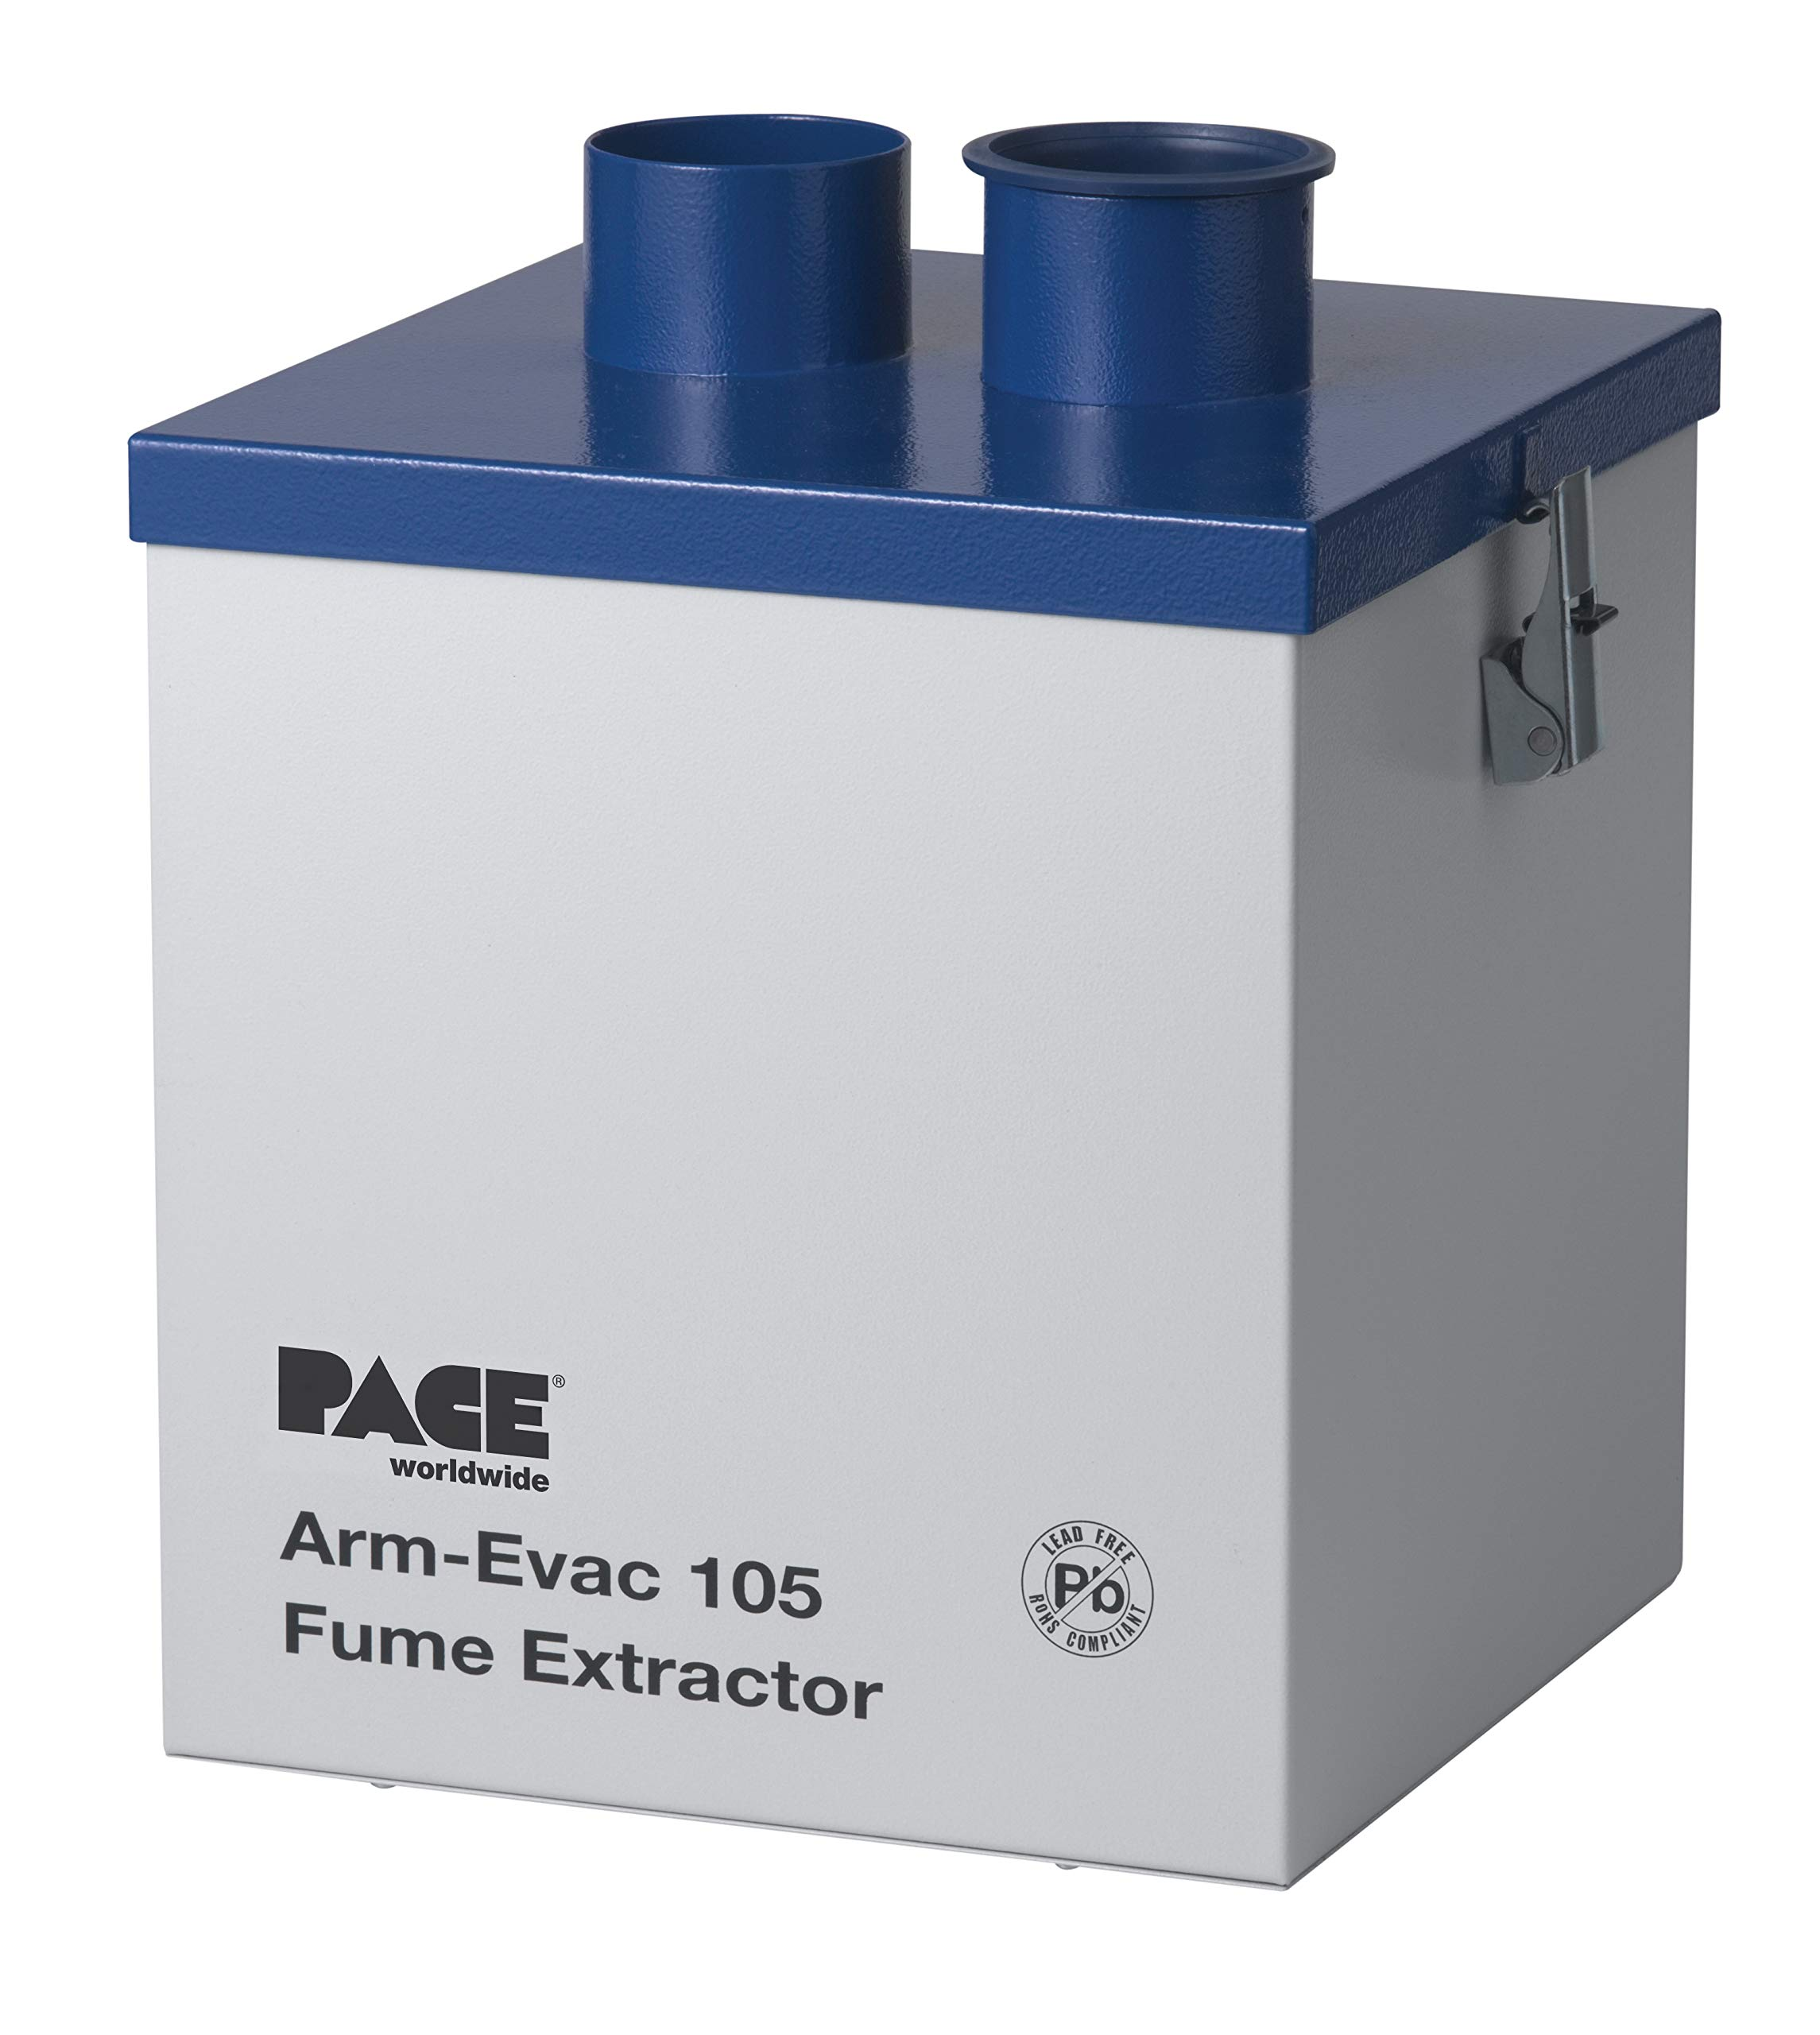 Pace Arm-Evac 105 Fume Extractor by PACE (Image #1)